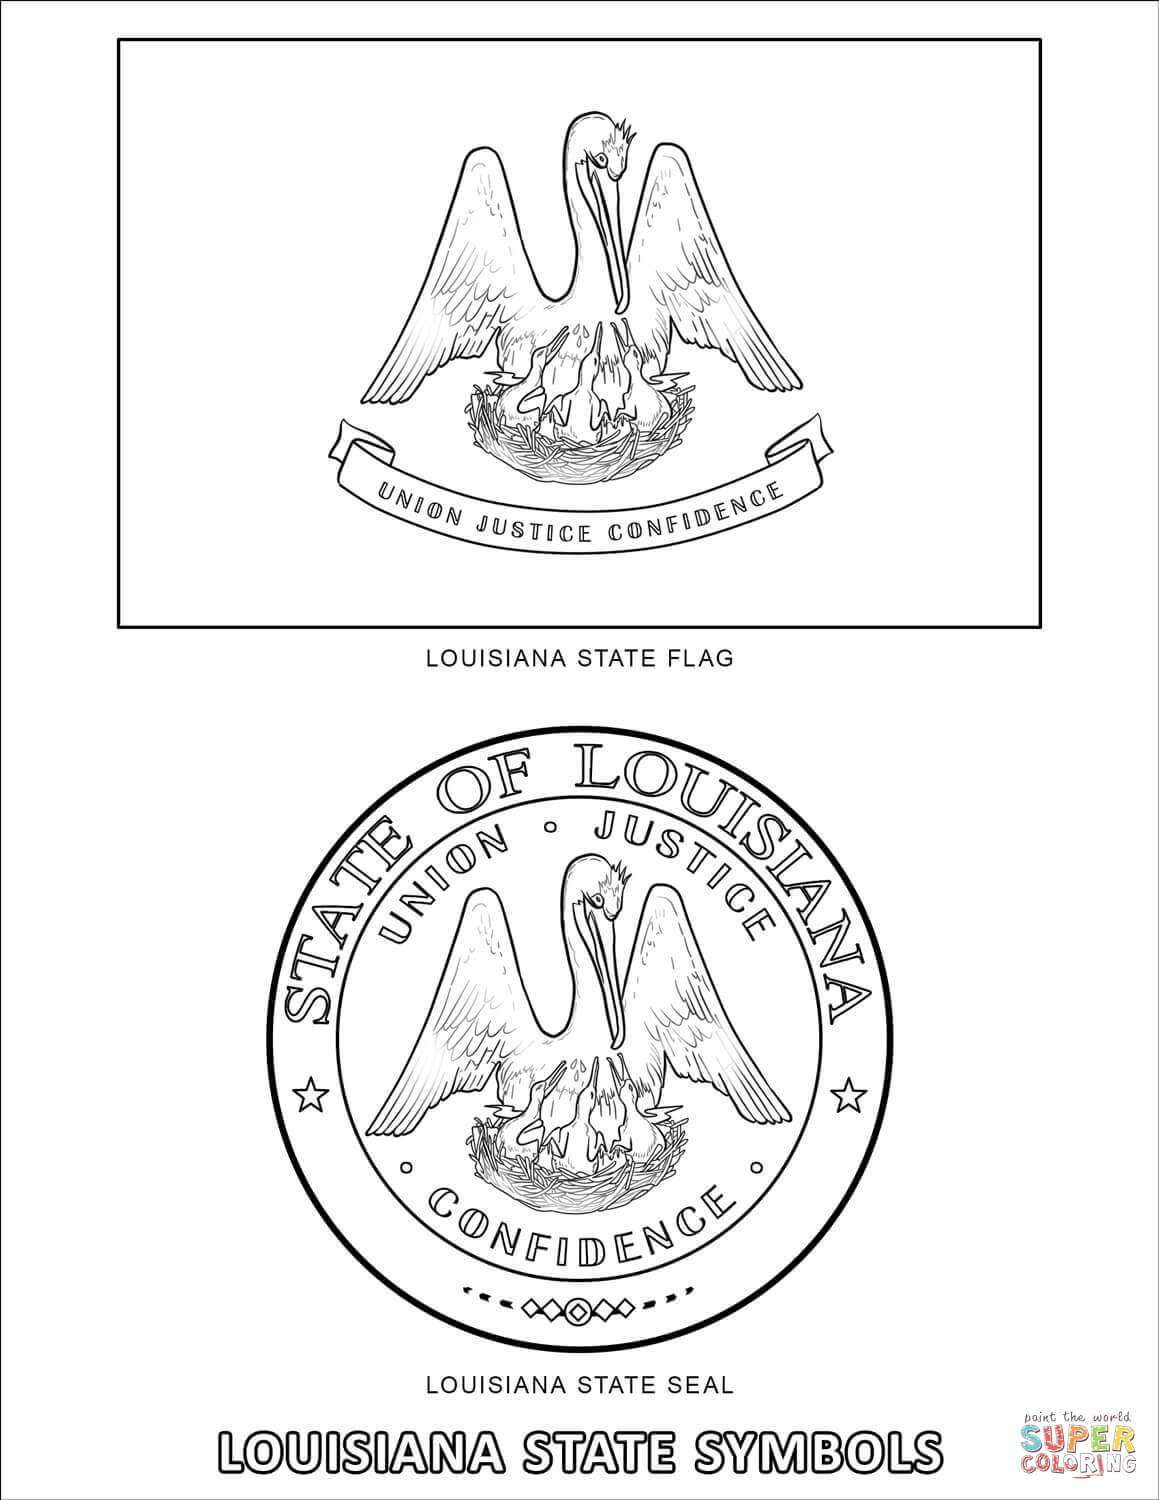 Louisiana State Symbols Coloring Page